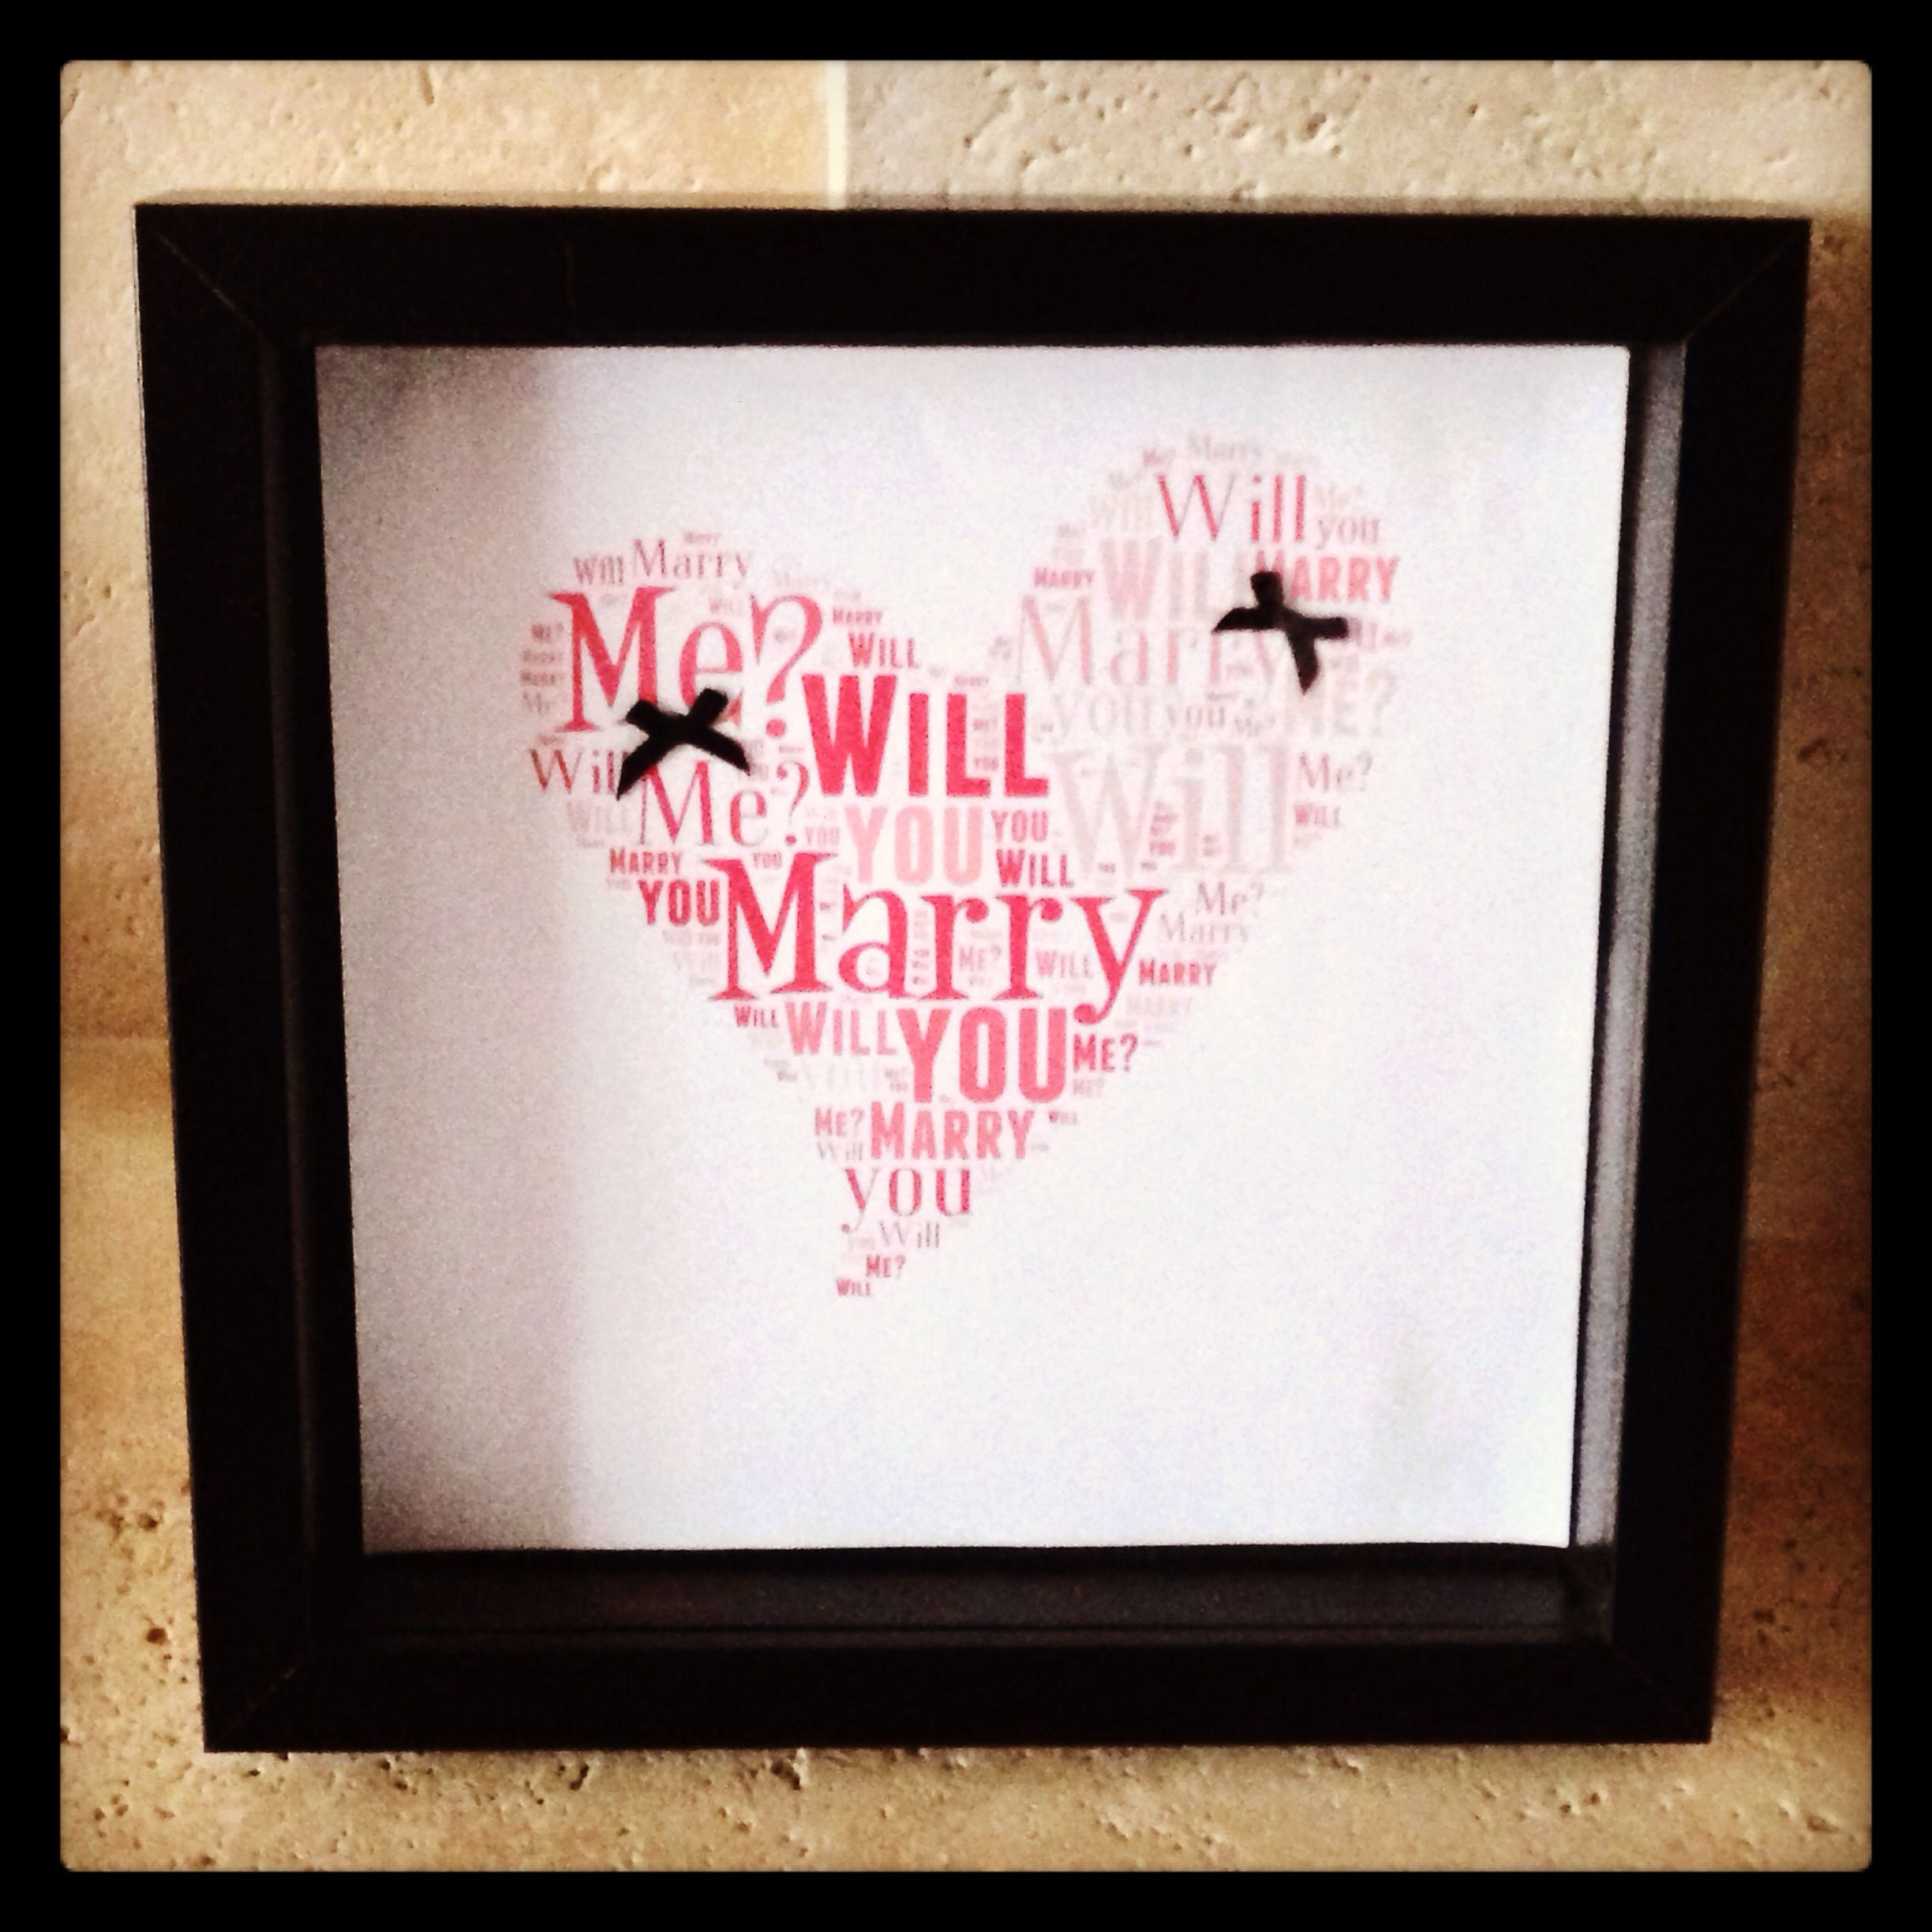 Will You Marry Me Keepsake Frame Frames Pinterest Frame And